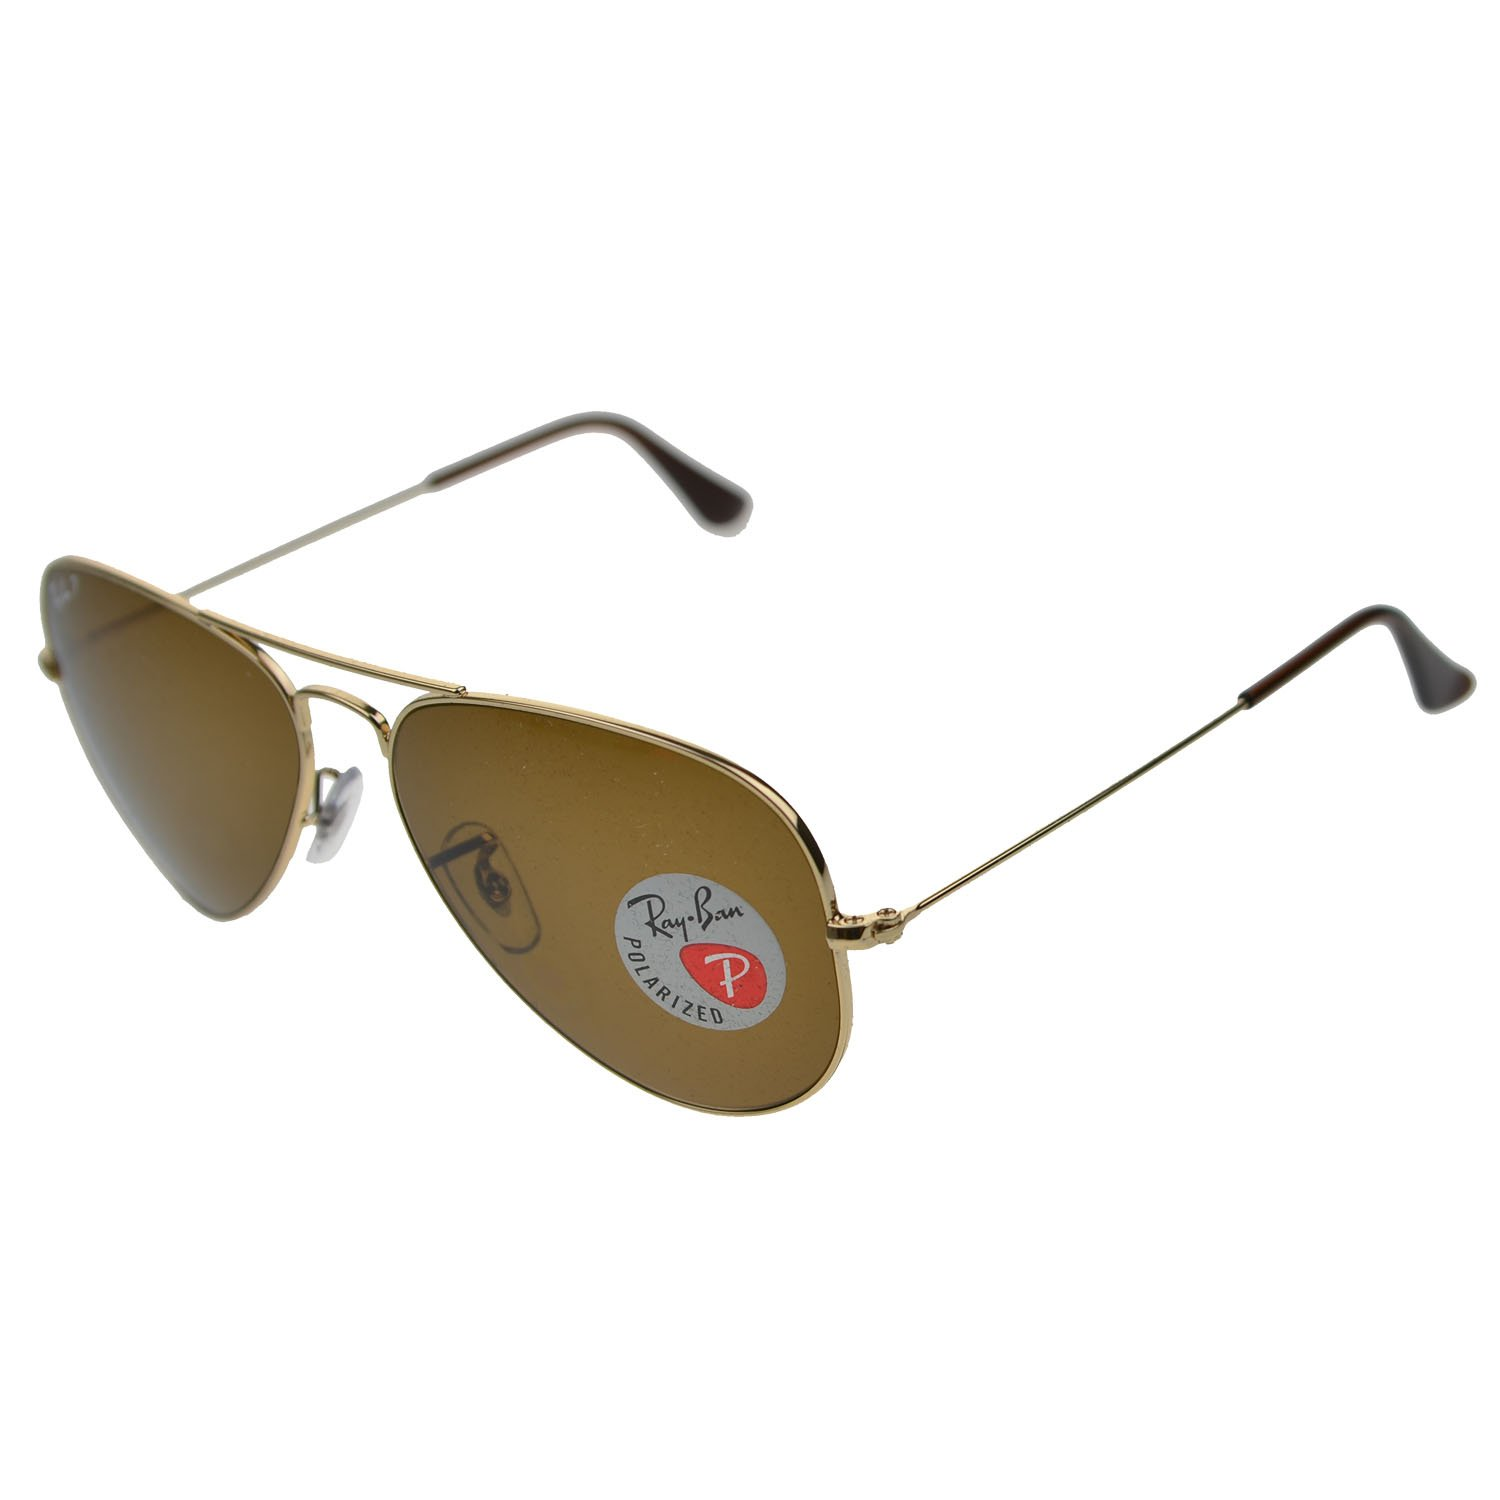 Amazon.com: Ray-Ban Sunglasses -RB3025 Aviator Large Metal / Frame: Gold  Lens: Crystal Brown Polarized (55mm): Ray-Ban: Shoes